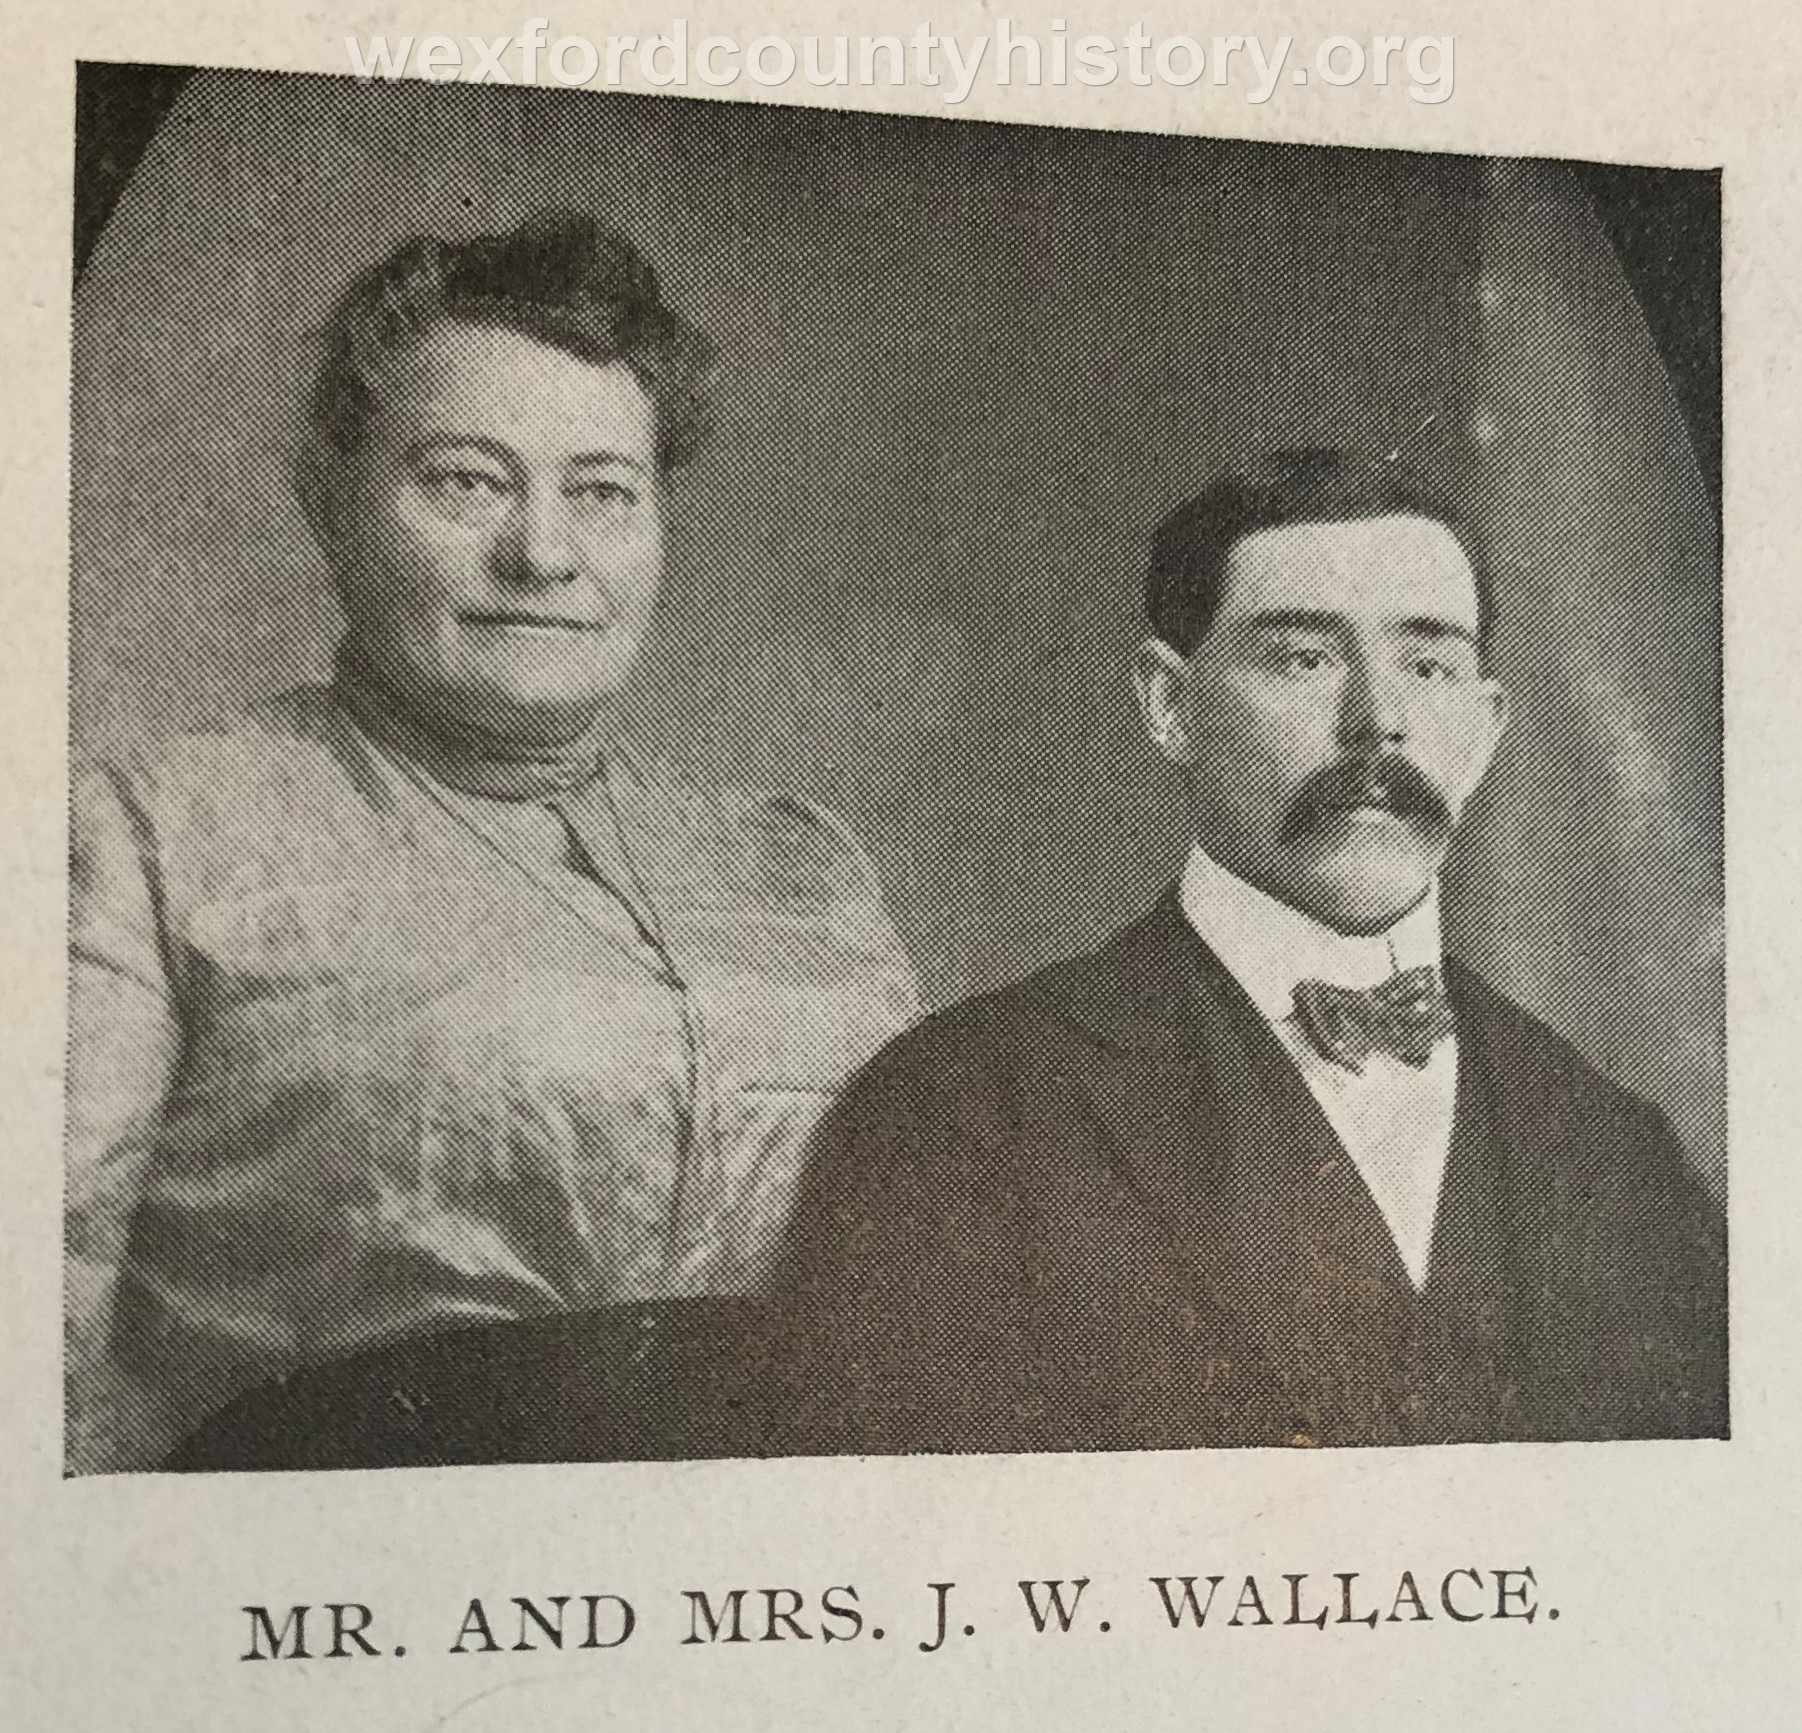 Mr. And Mrs. J. W. Wallace